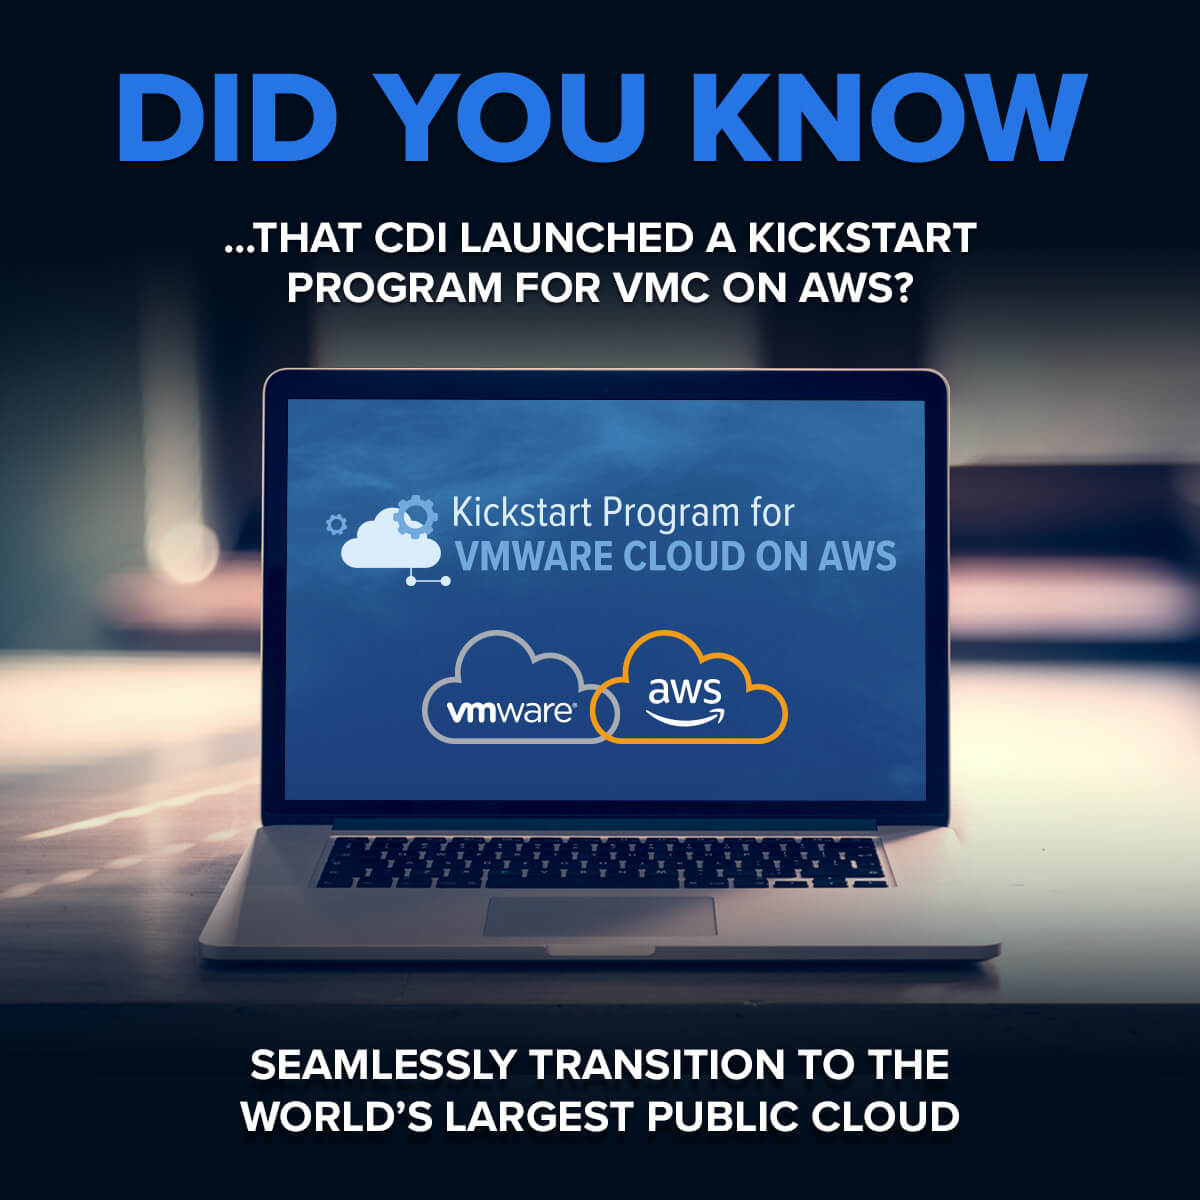 CDI Kickstart Program for VMware Cloud on AWS